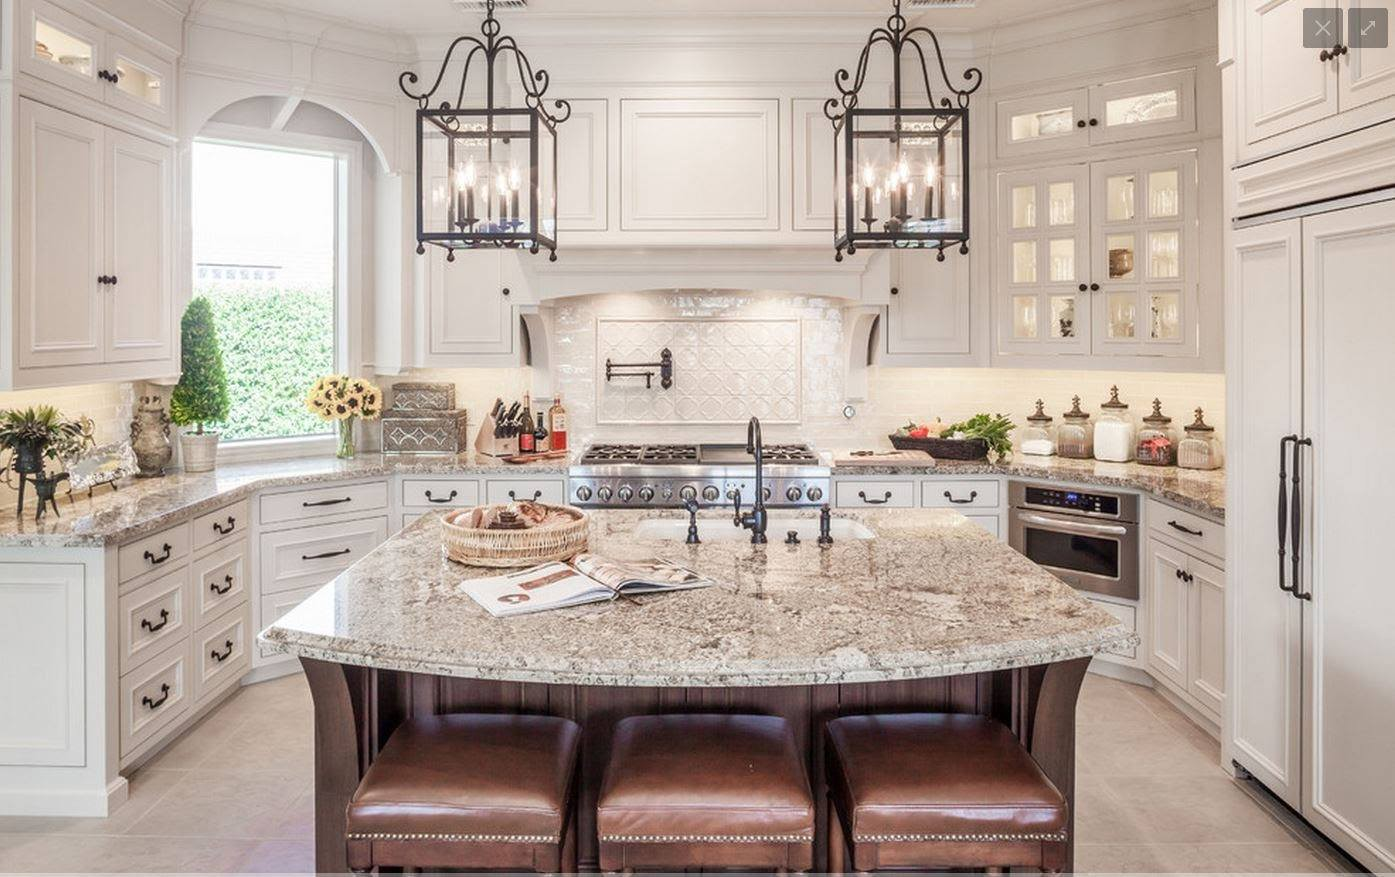 My Dream Kitchen Countertops : The diy guide to getting your dream kitchen maria killam